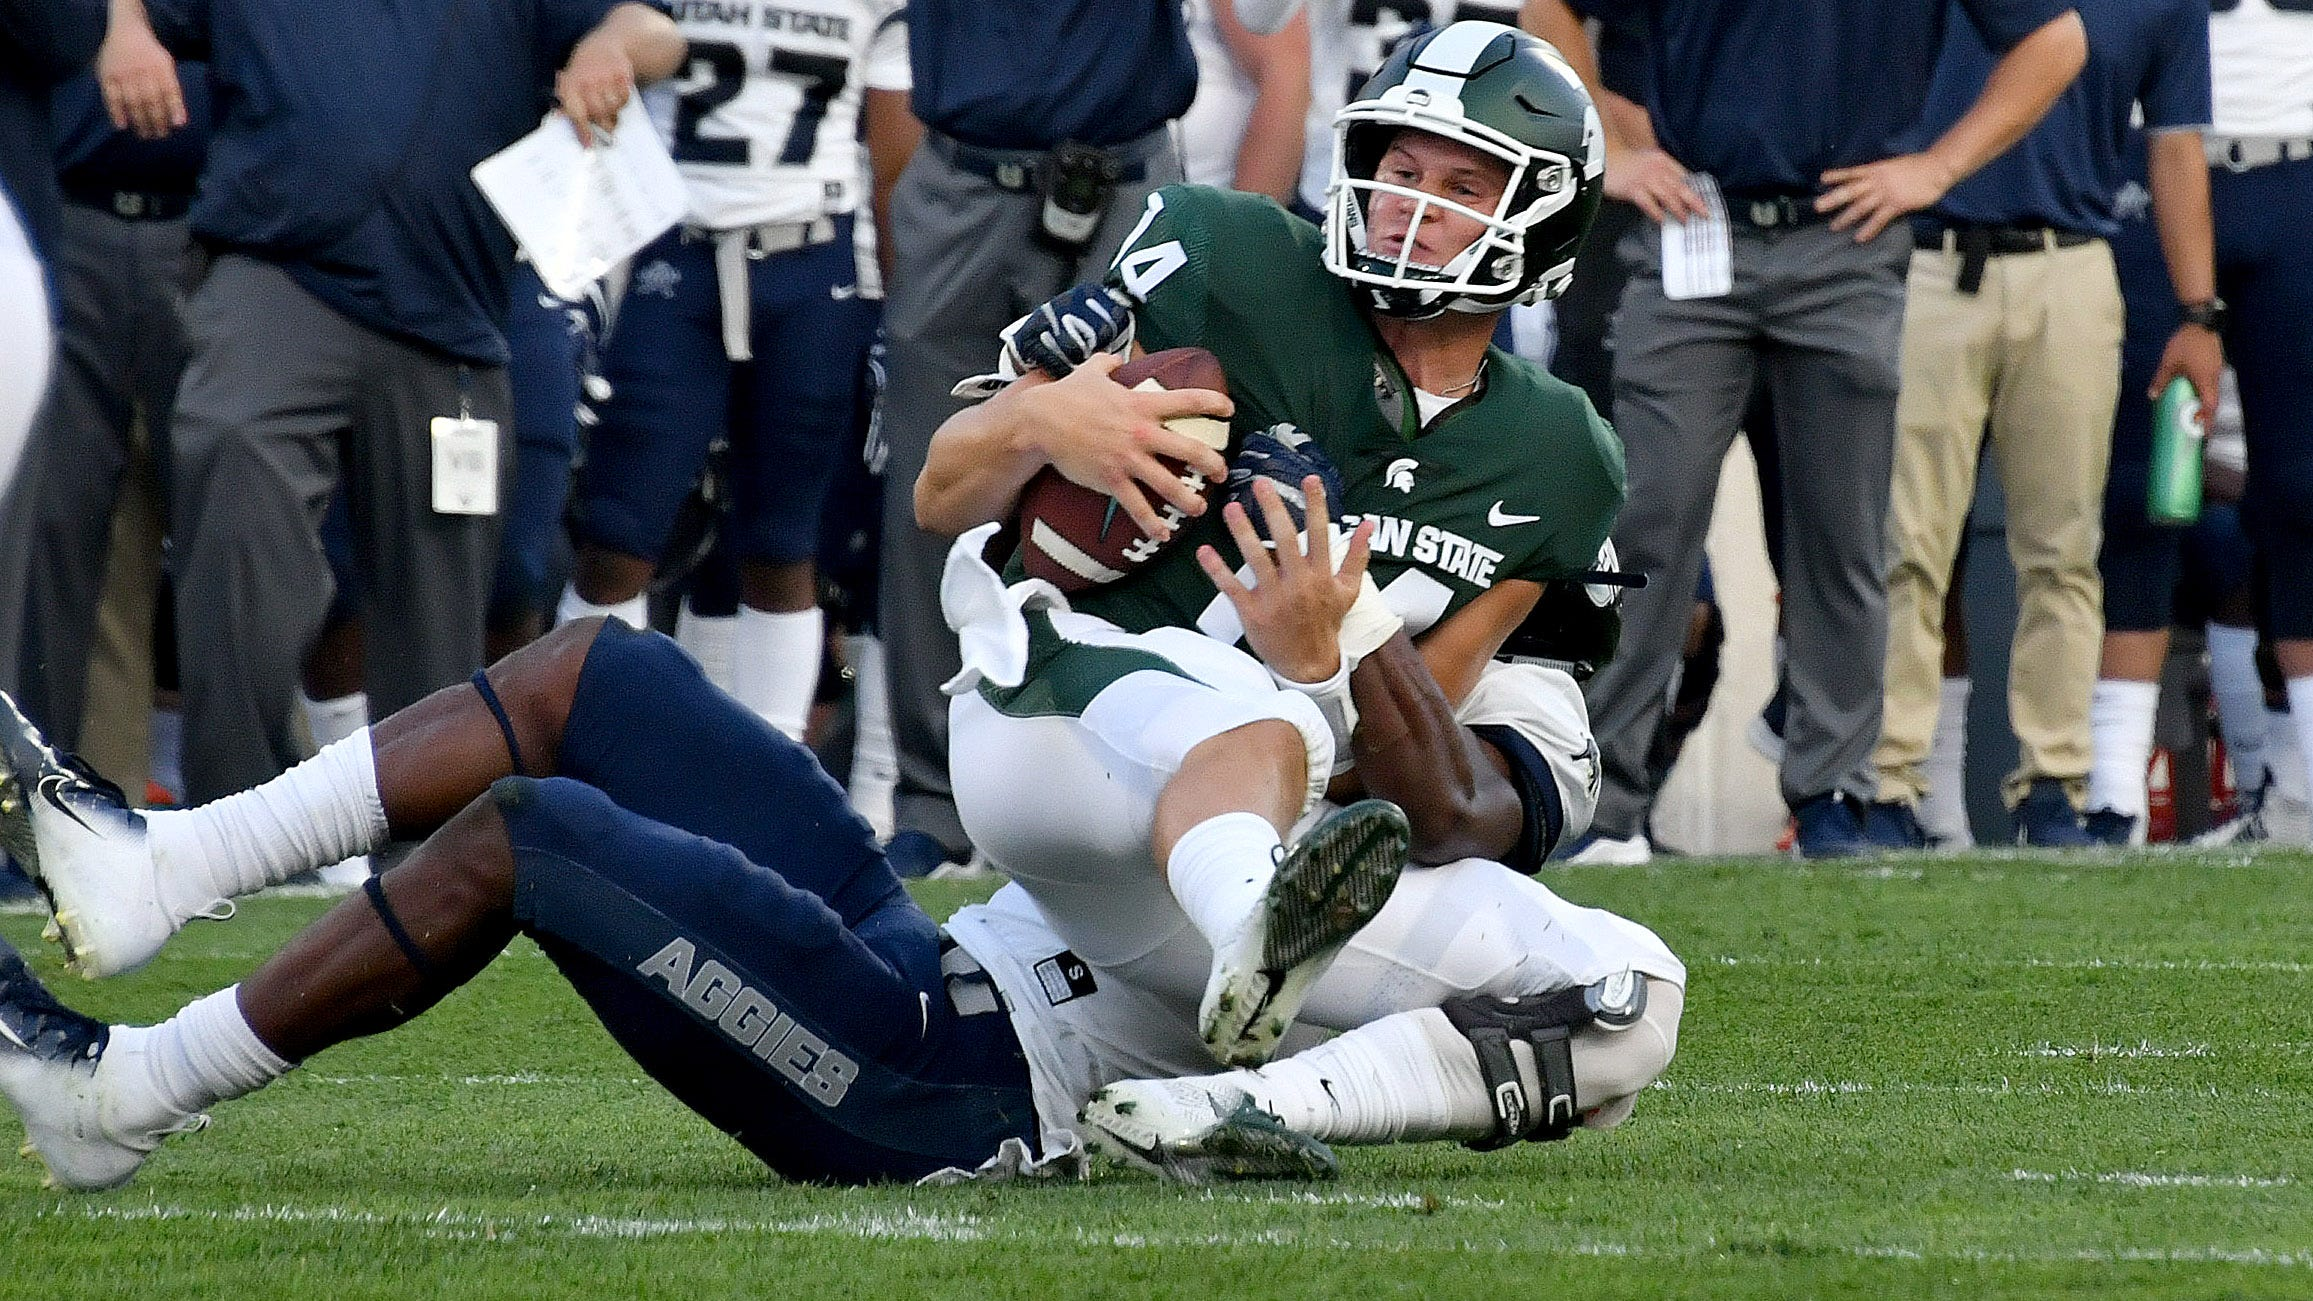 Michigan State offense still figuring out how to click